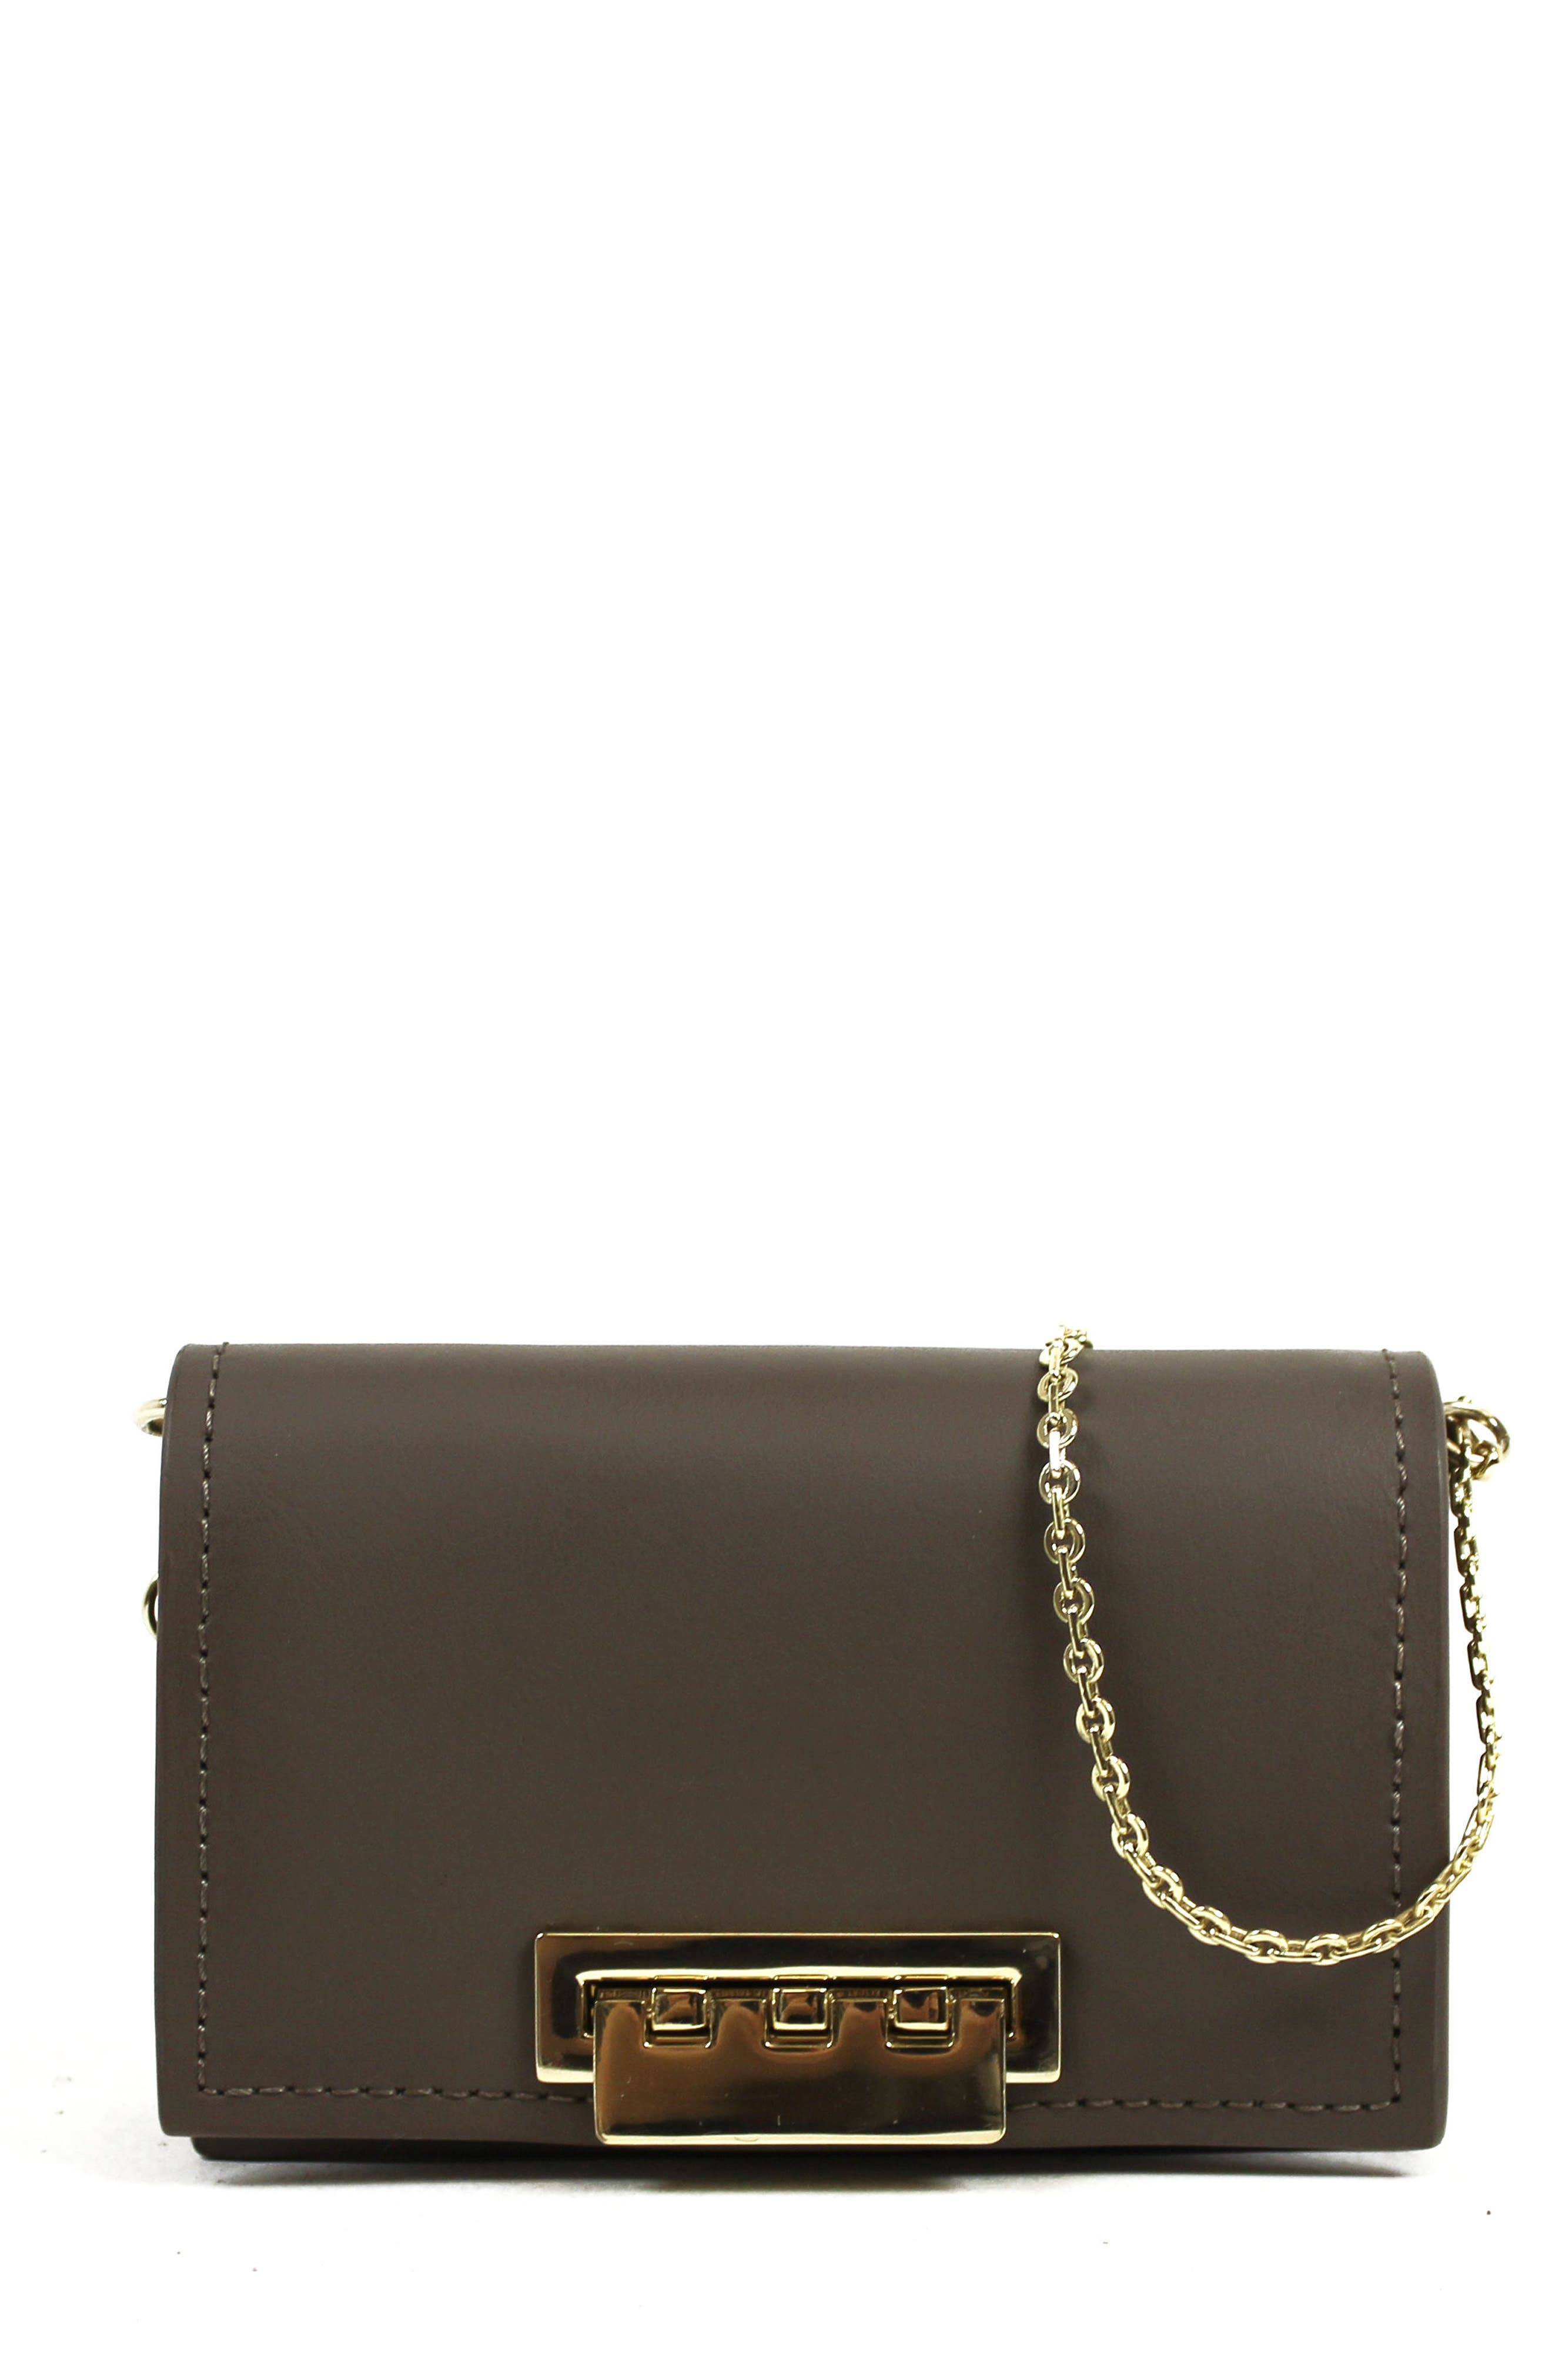 ZAC Zac Posen Earthette Leather Card Case